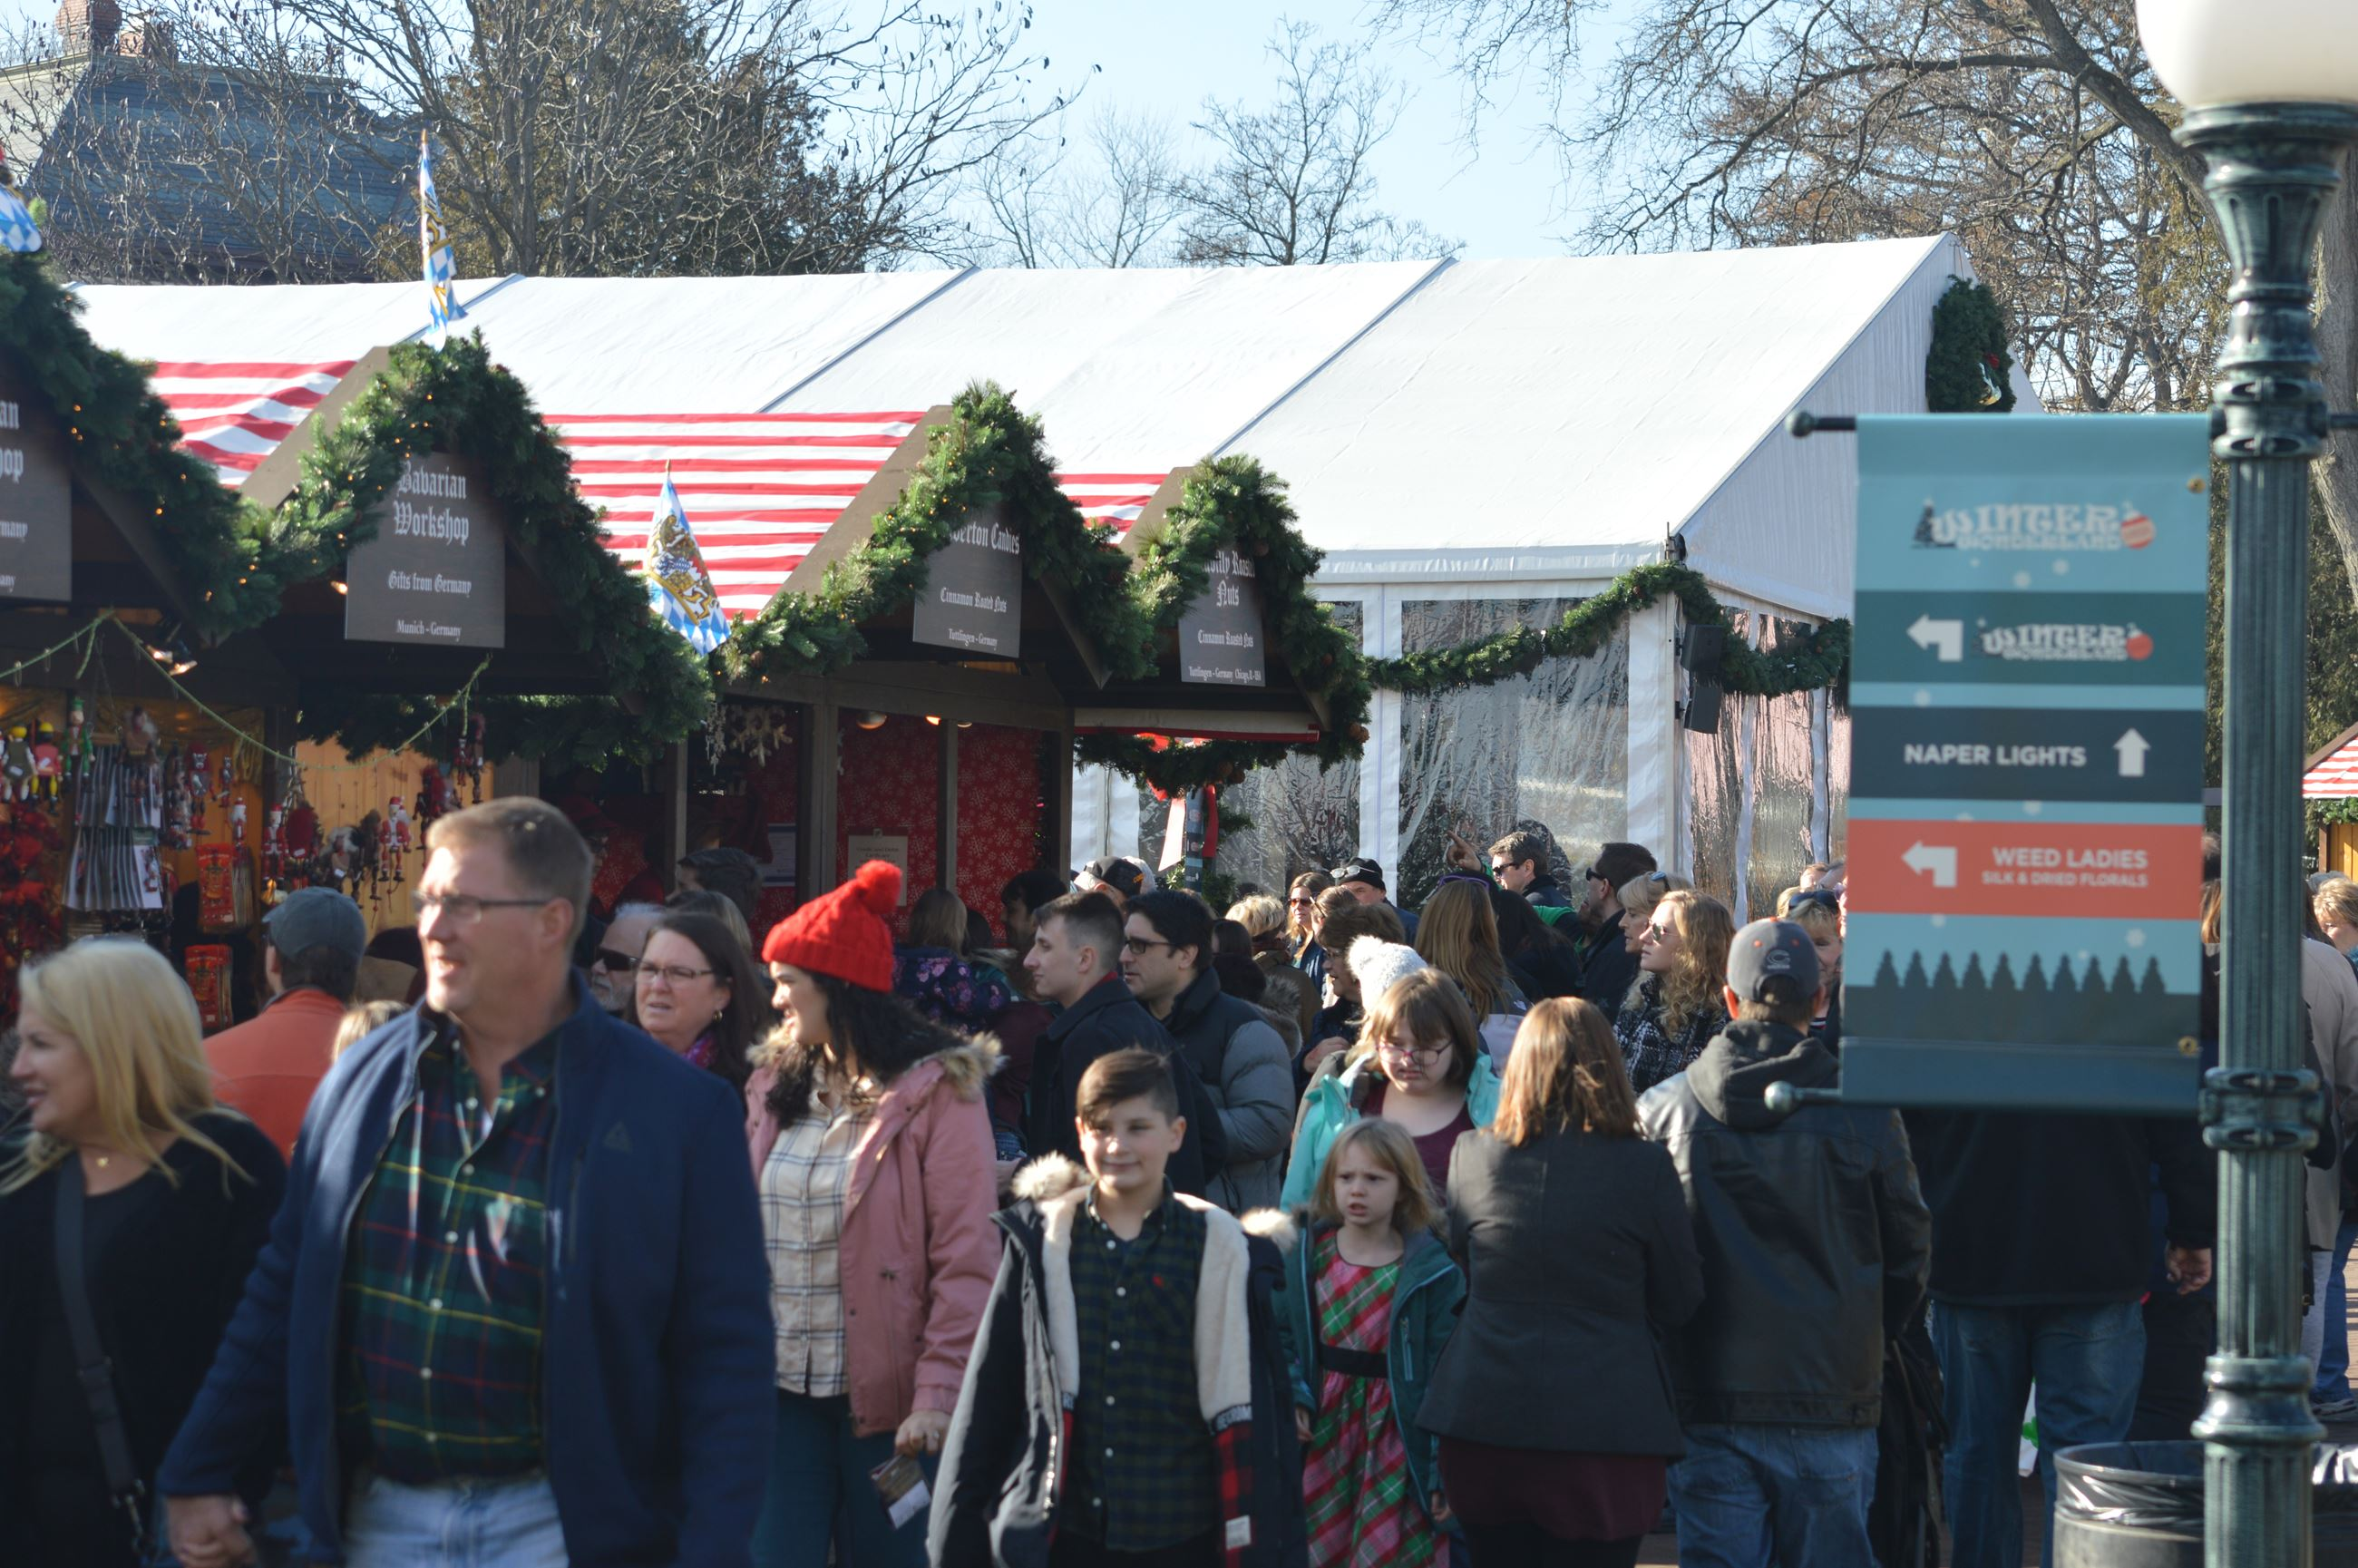 crowd at Christkindlmarket 2018